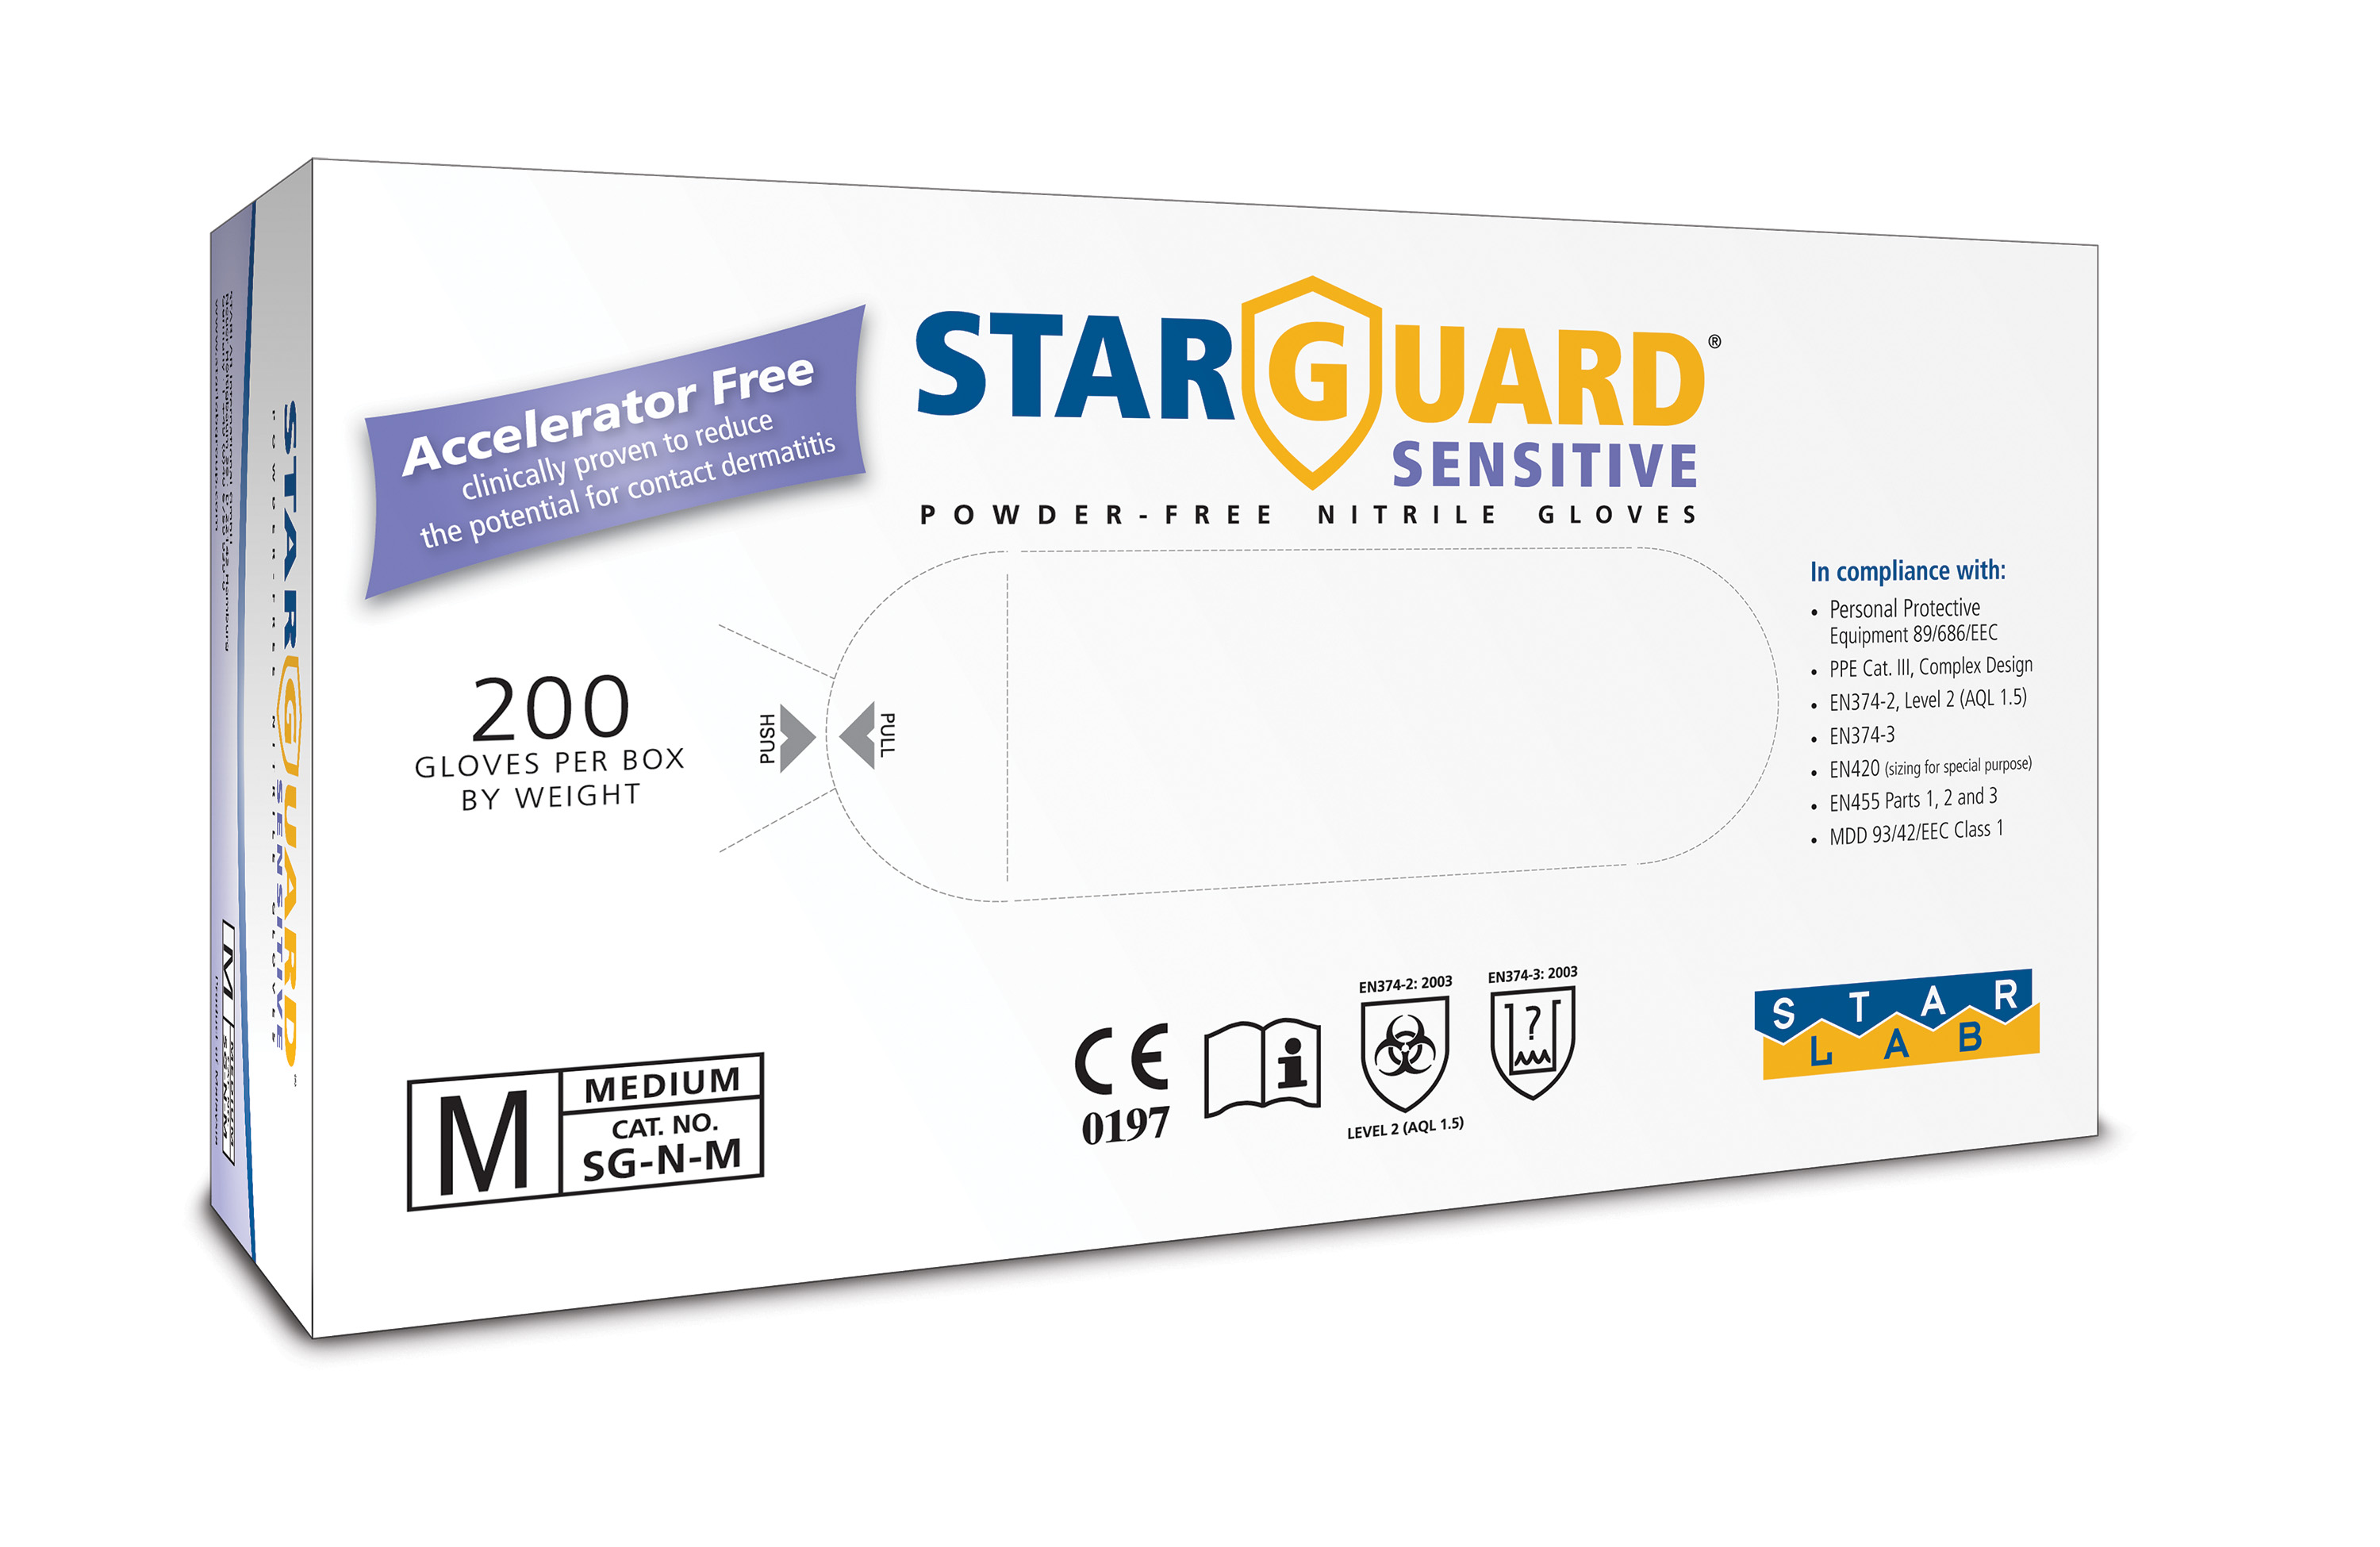 StarGuard SENSITIVE Nitrile Gloves, Powder Free, Blue, Size XS, Pk/ 10 x 200 gloves